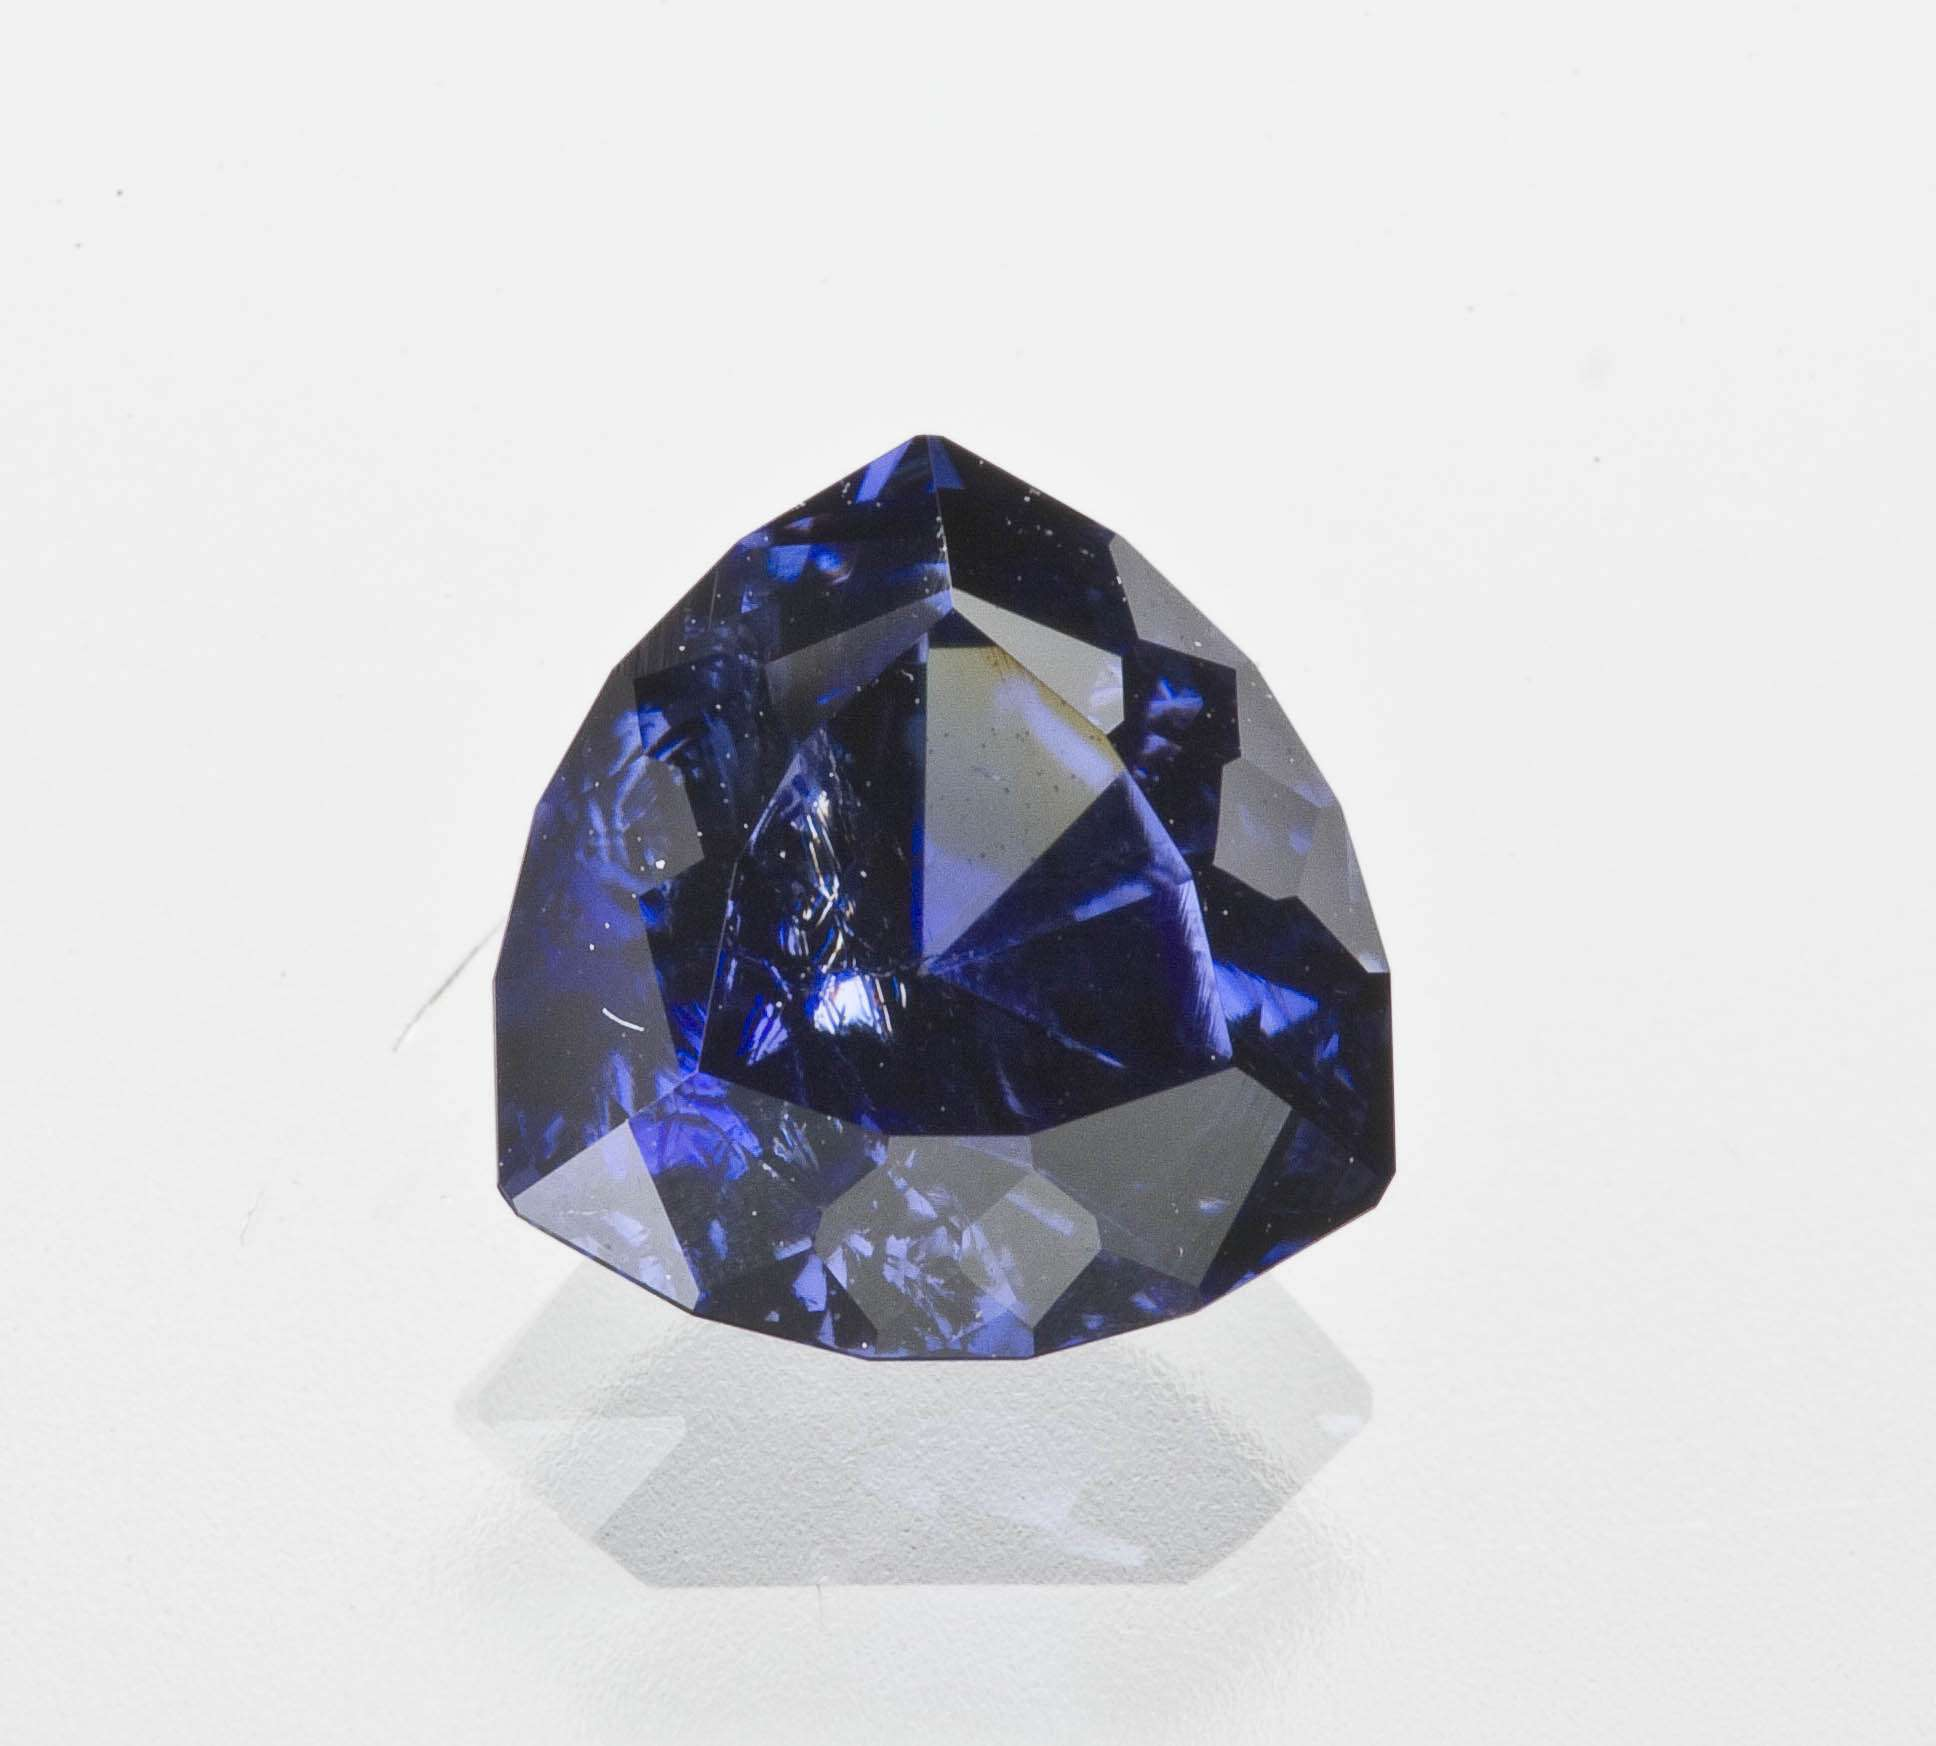 Our largest gem species certainly saturated color This riveting